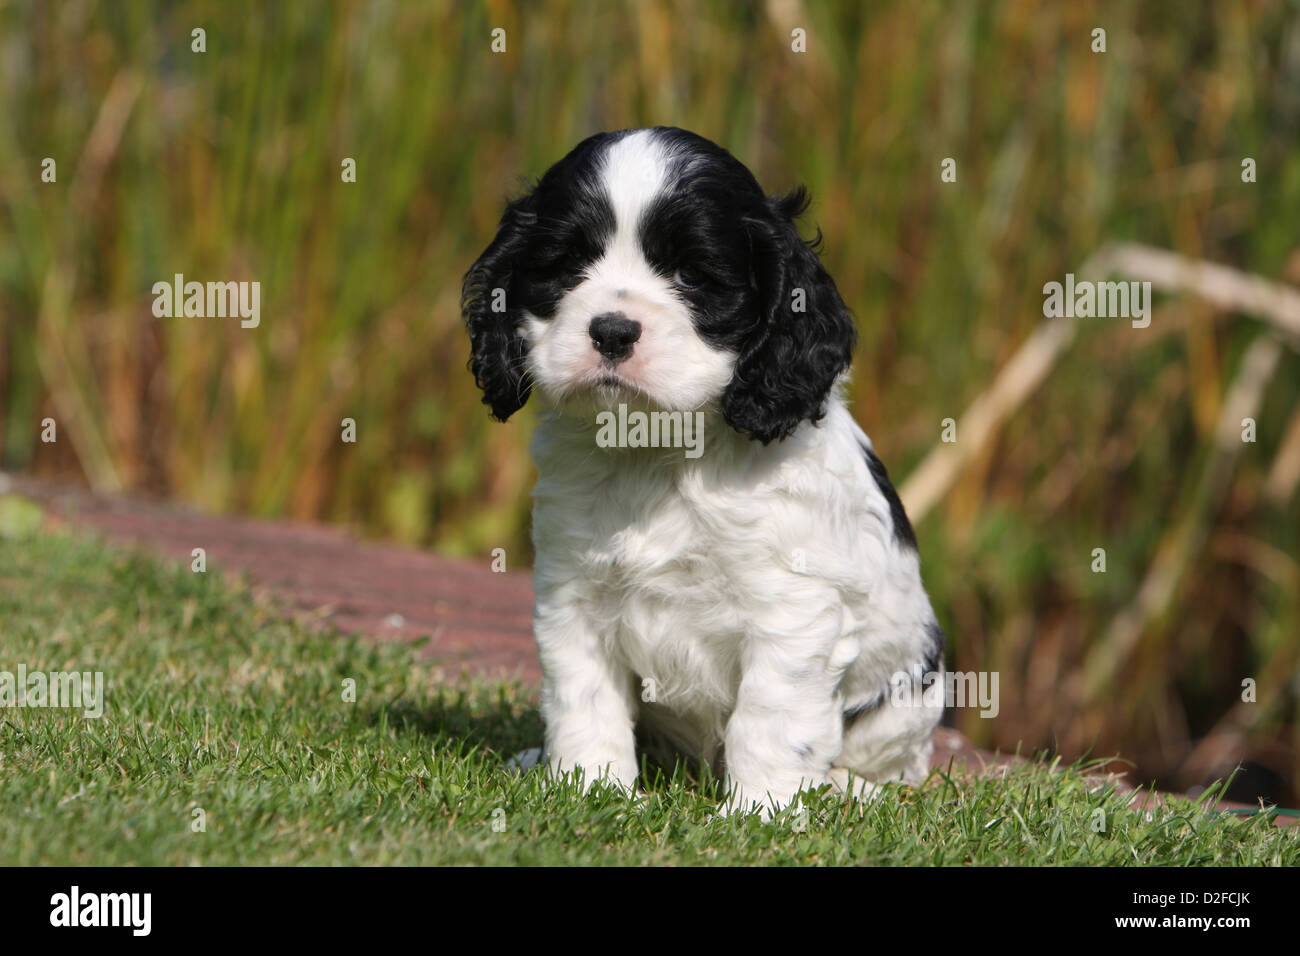 Dog American Cocker Spaniel Puppy Black And White Sitting In A